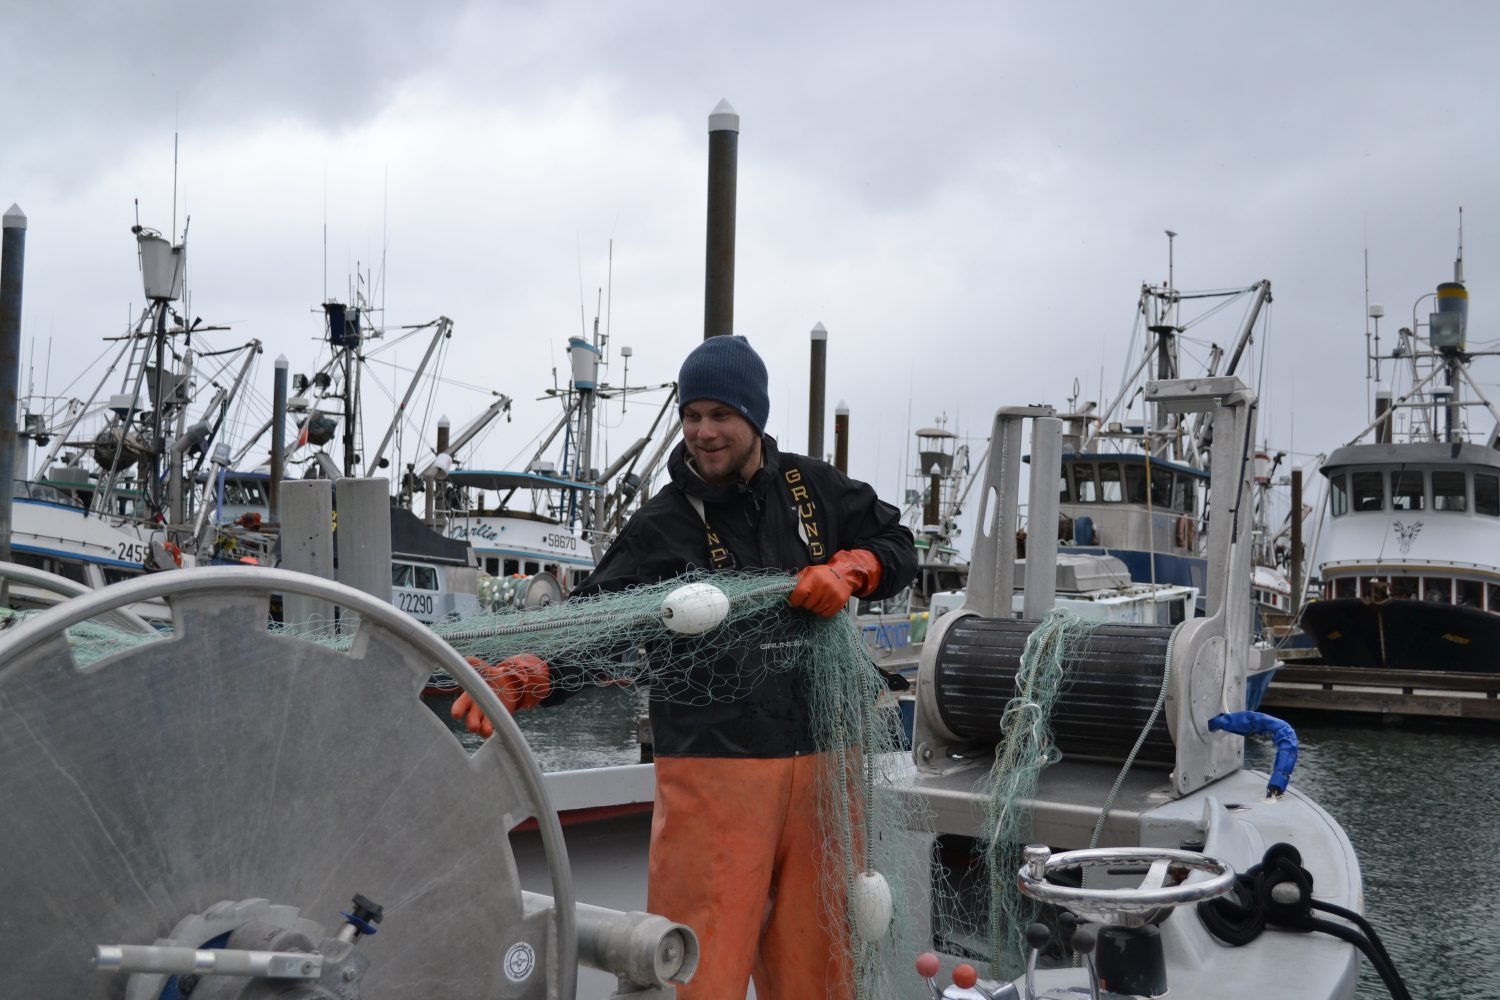 An Alaska State Fishing Tradition On The Copper River